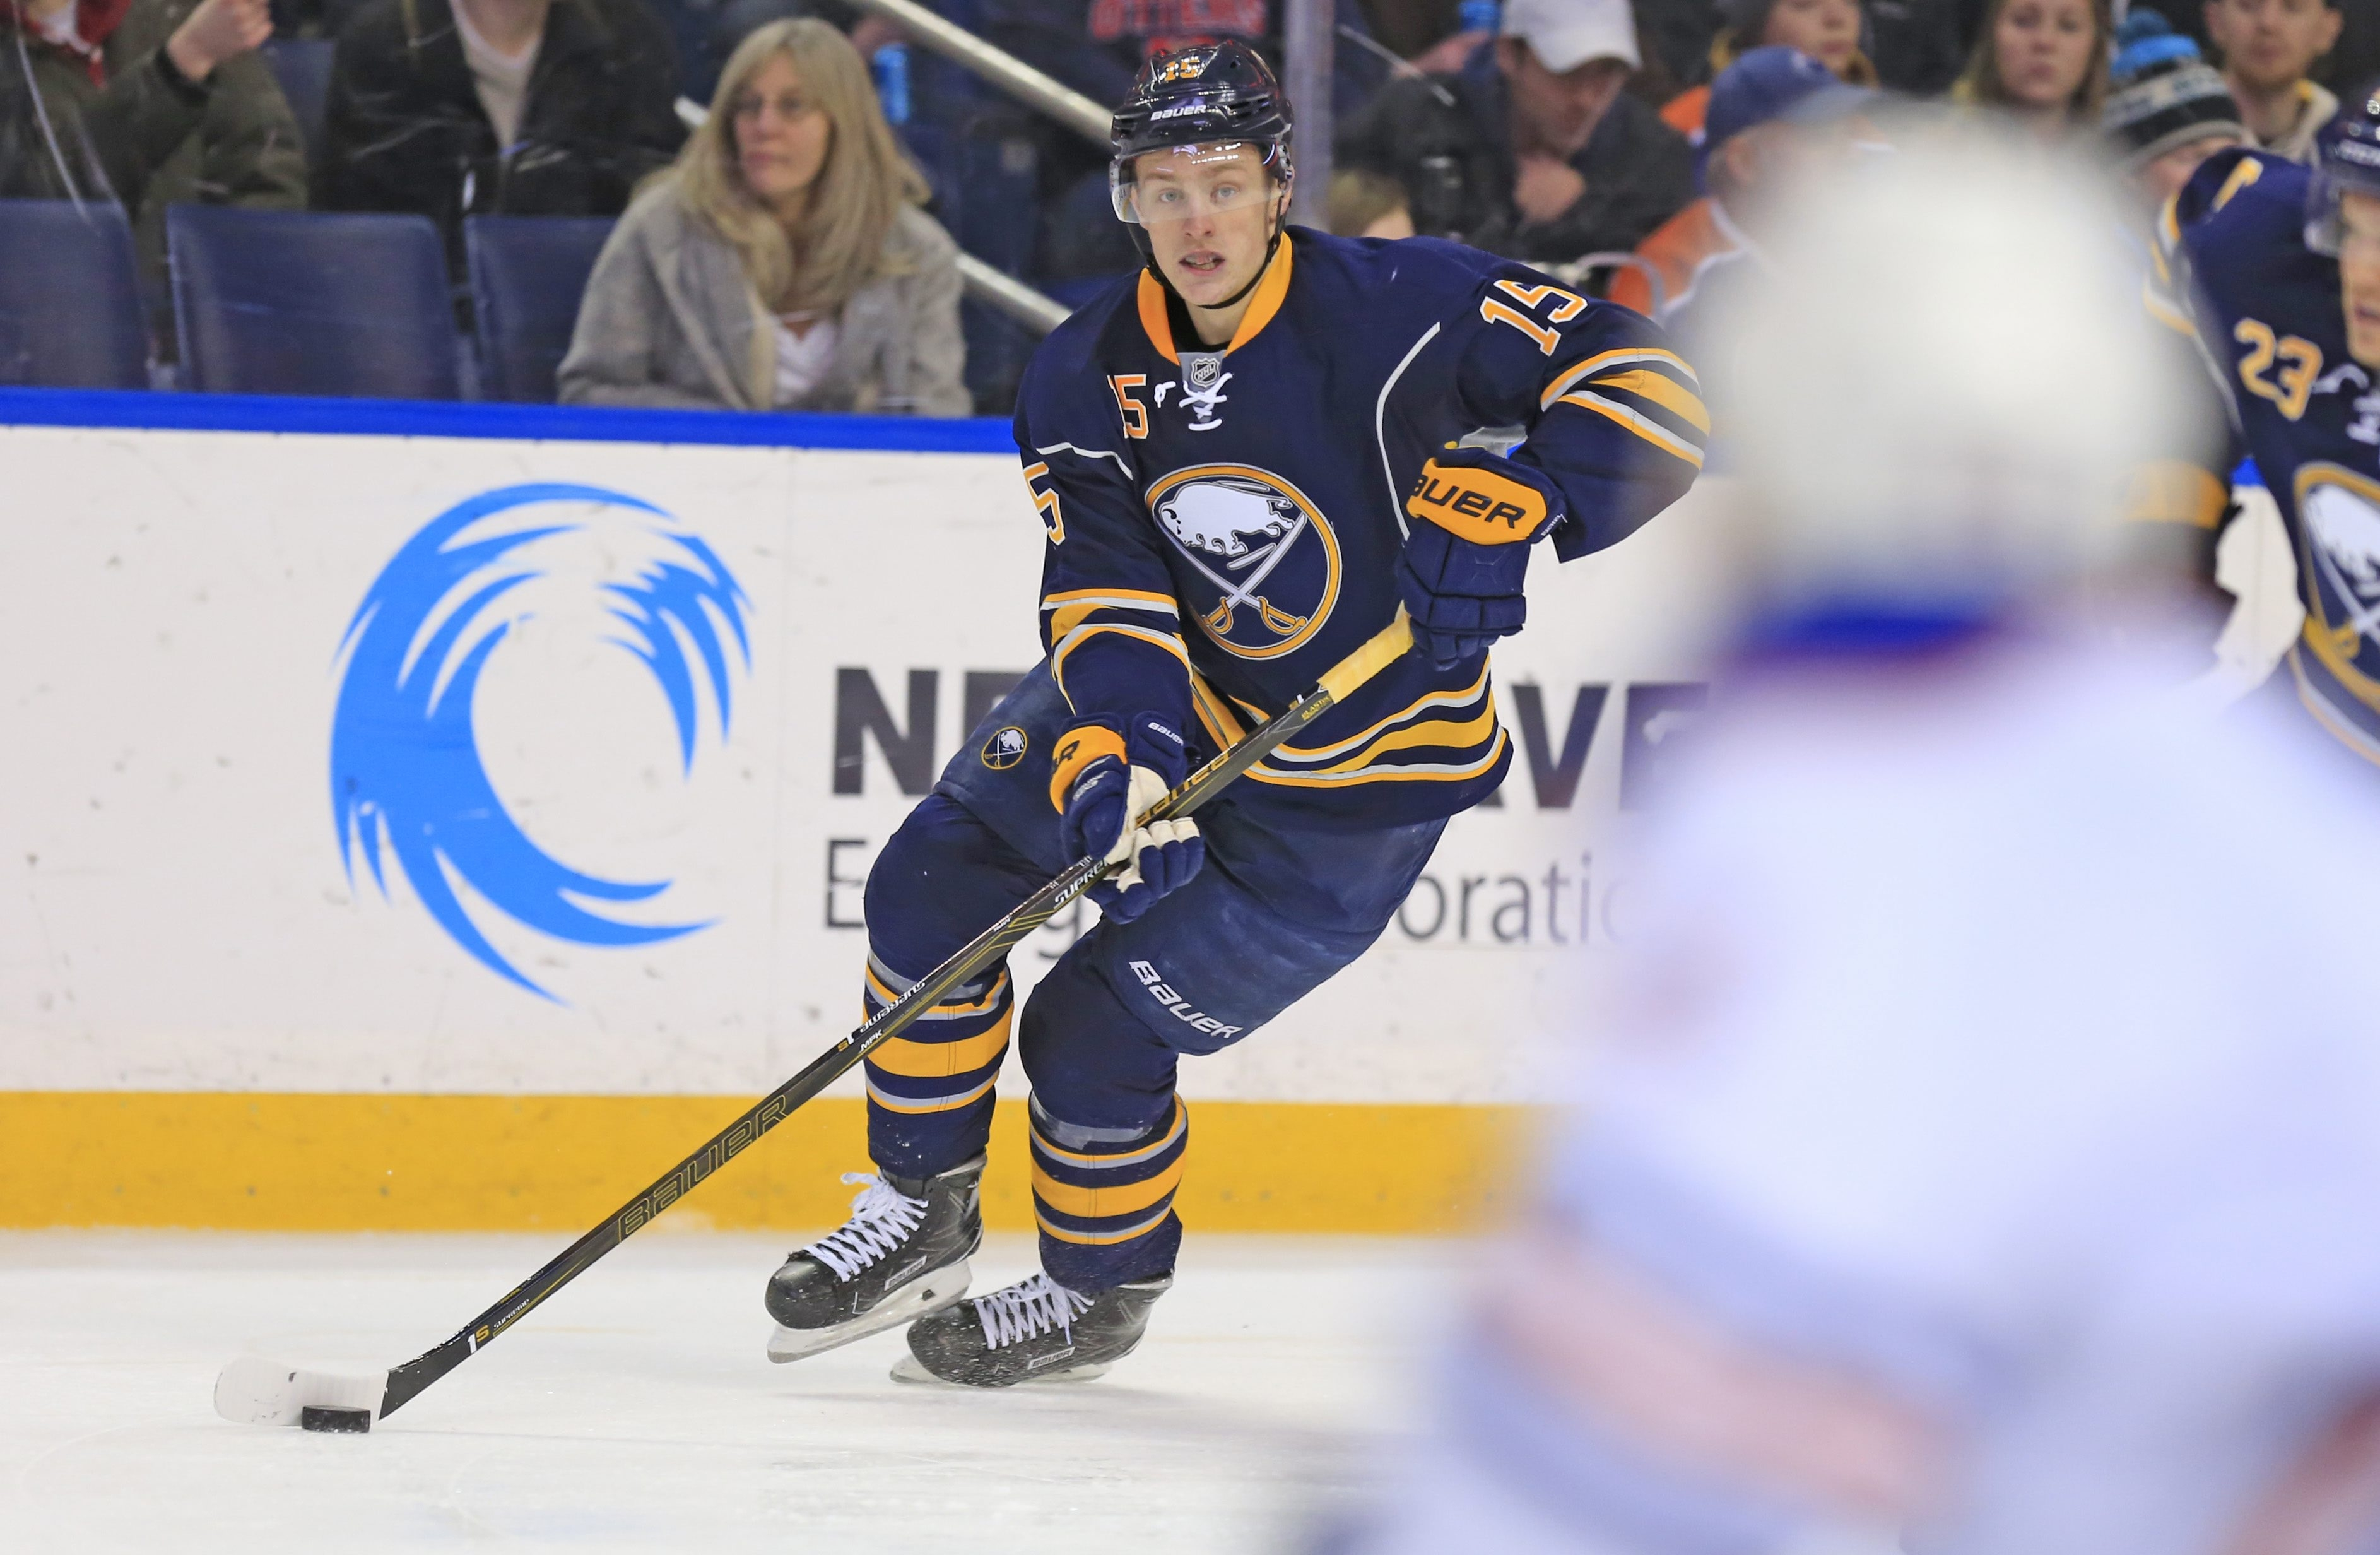 Jack Eichel is the face of the Sabres' franchise, making his injury potentially devastating to their season. (Harry Scull Jr./Buffalo News)